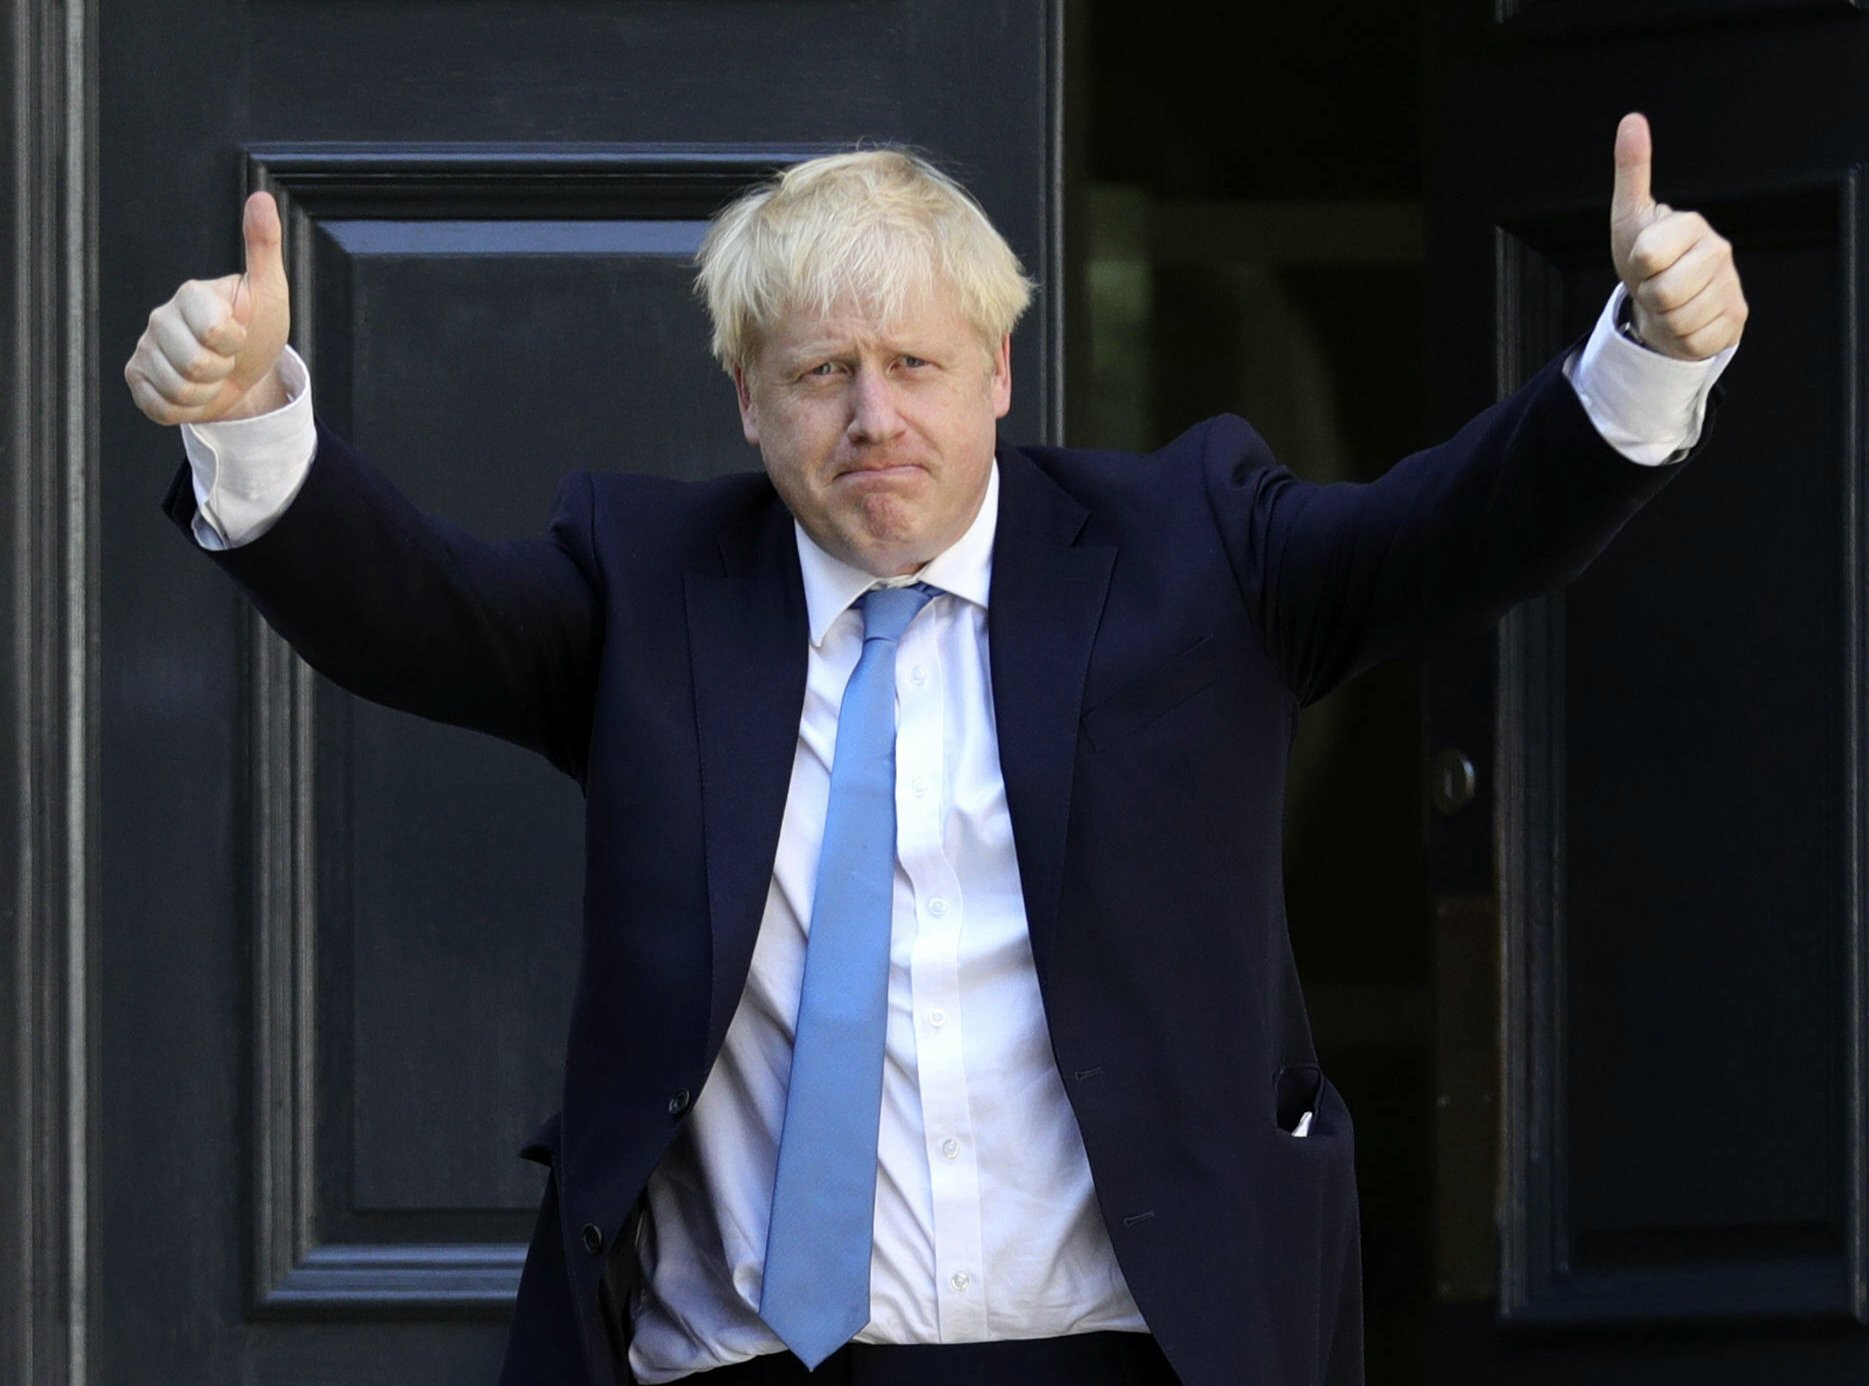 Boris Johnson chosen as new UK leader, now faces Brexit test